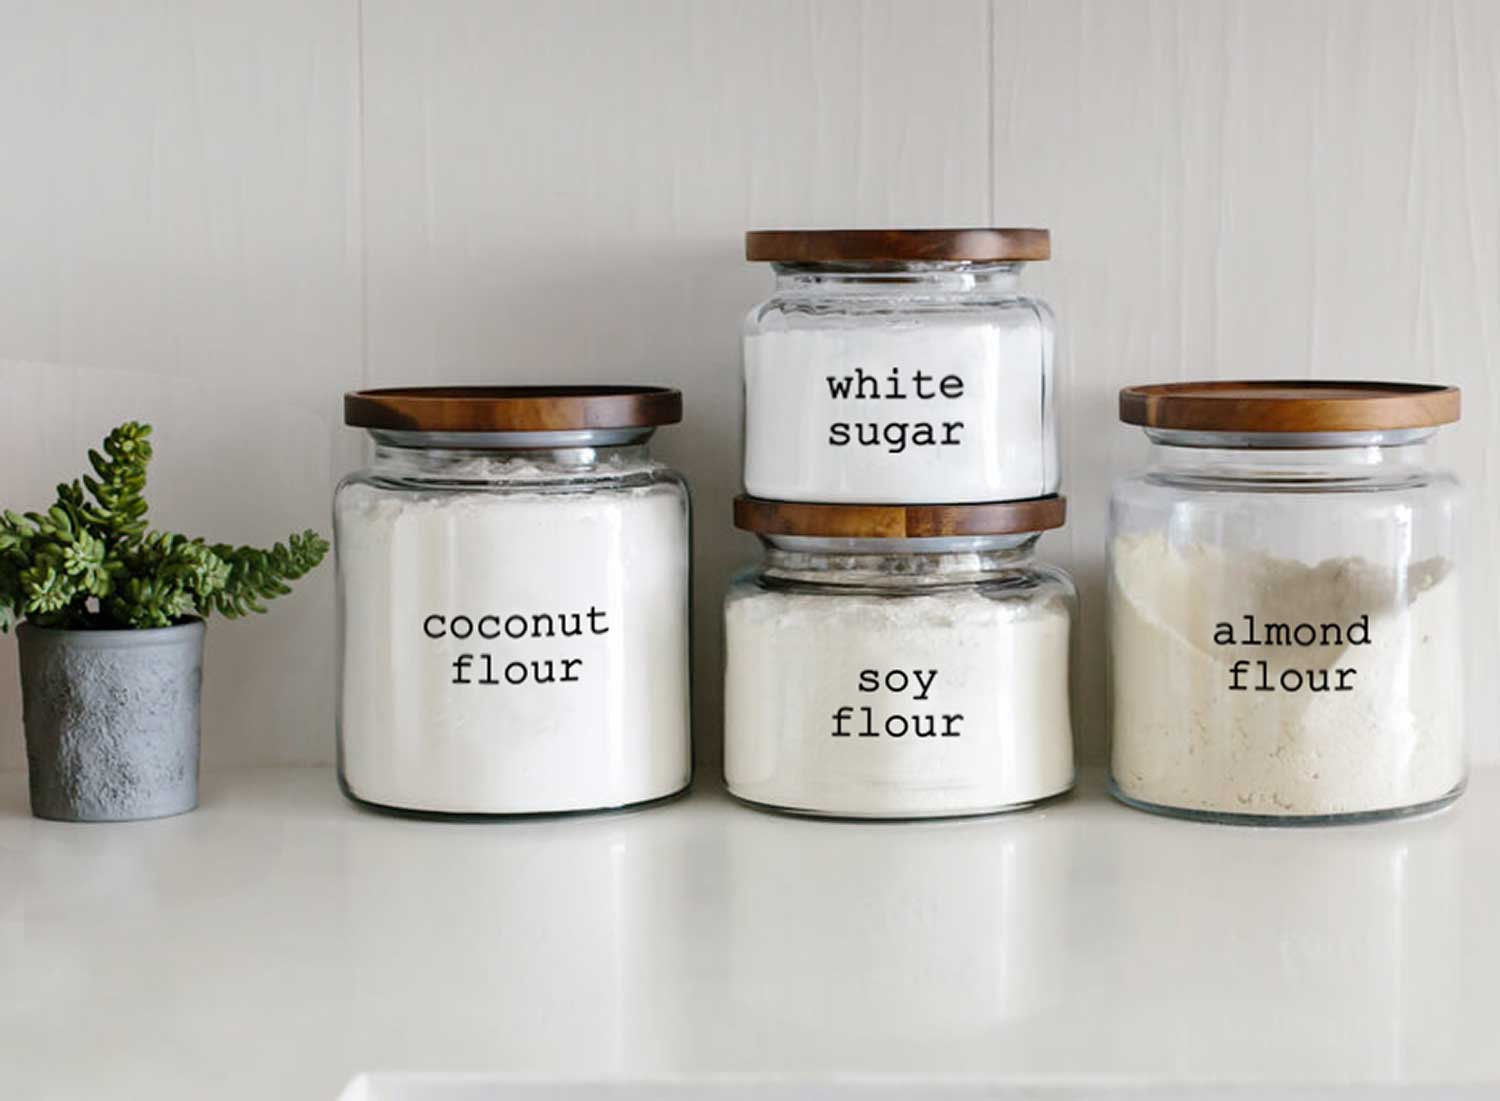 Kitchen Organization Custom Labels on glass food canisters on counter